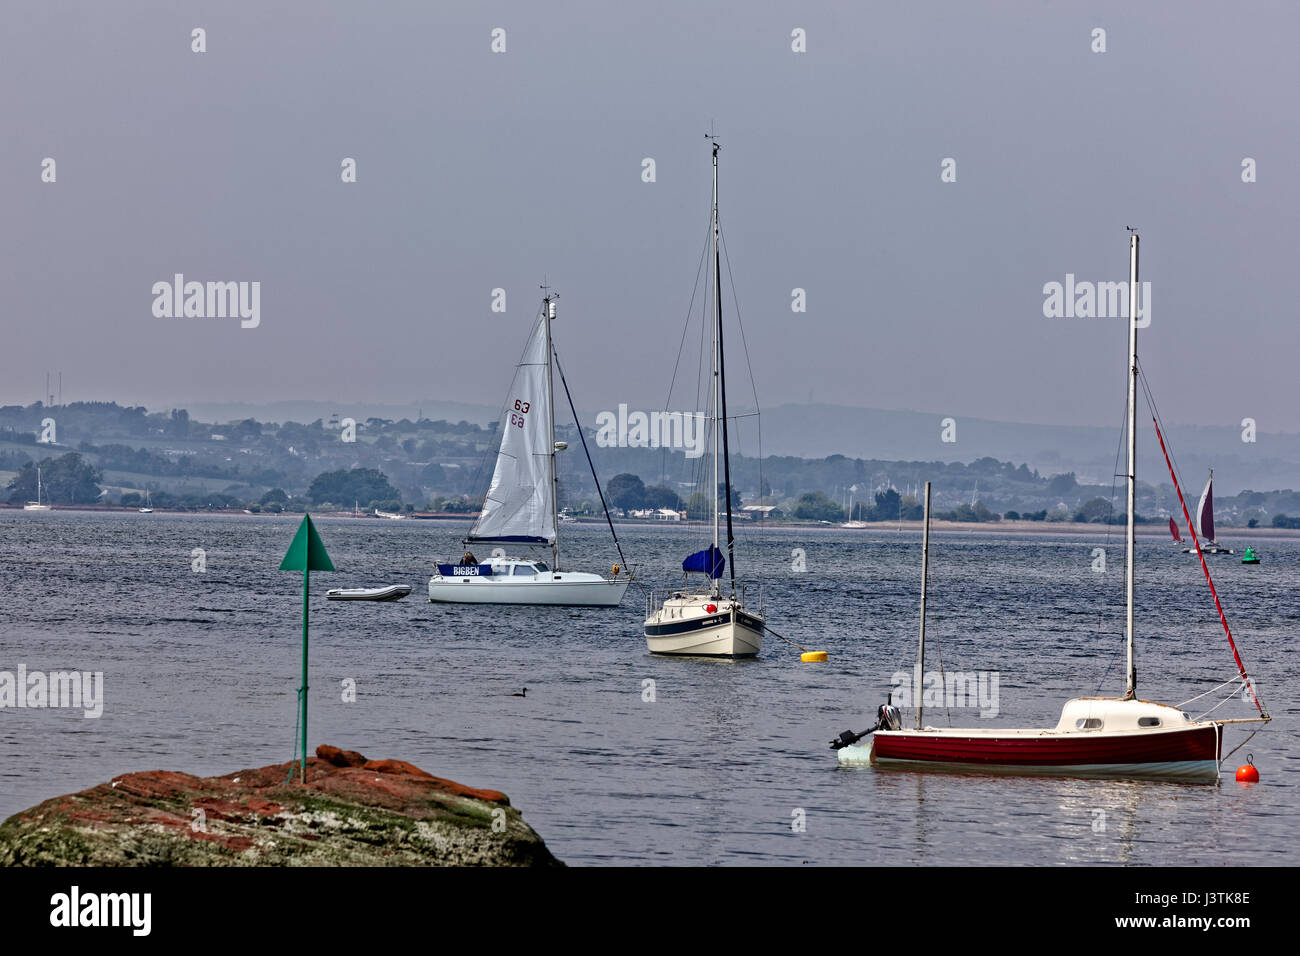 Sailing boats on the Exe estuary - a crewman prepares to get underway - navigation warning in foreground - Stock Image